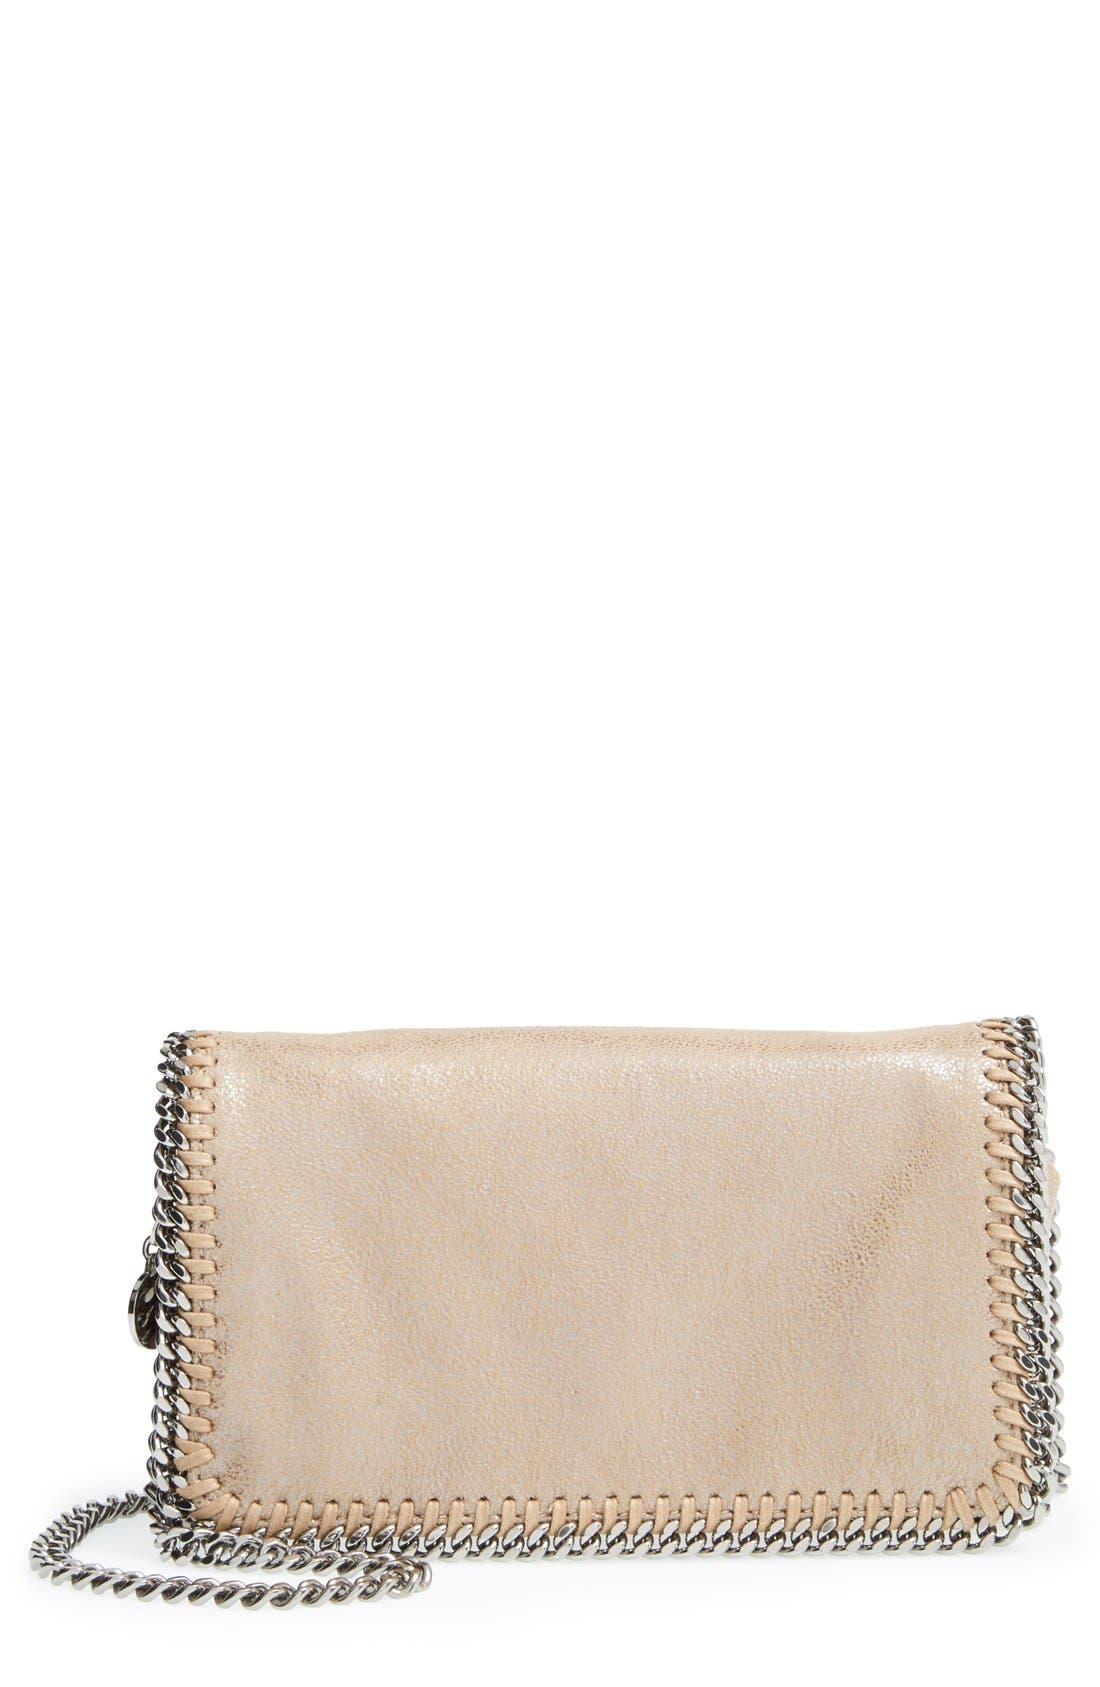 Main Image - Stella McCartney 'Falabella' Crossbody Bag